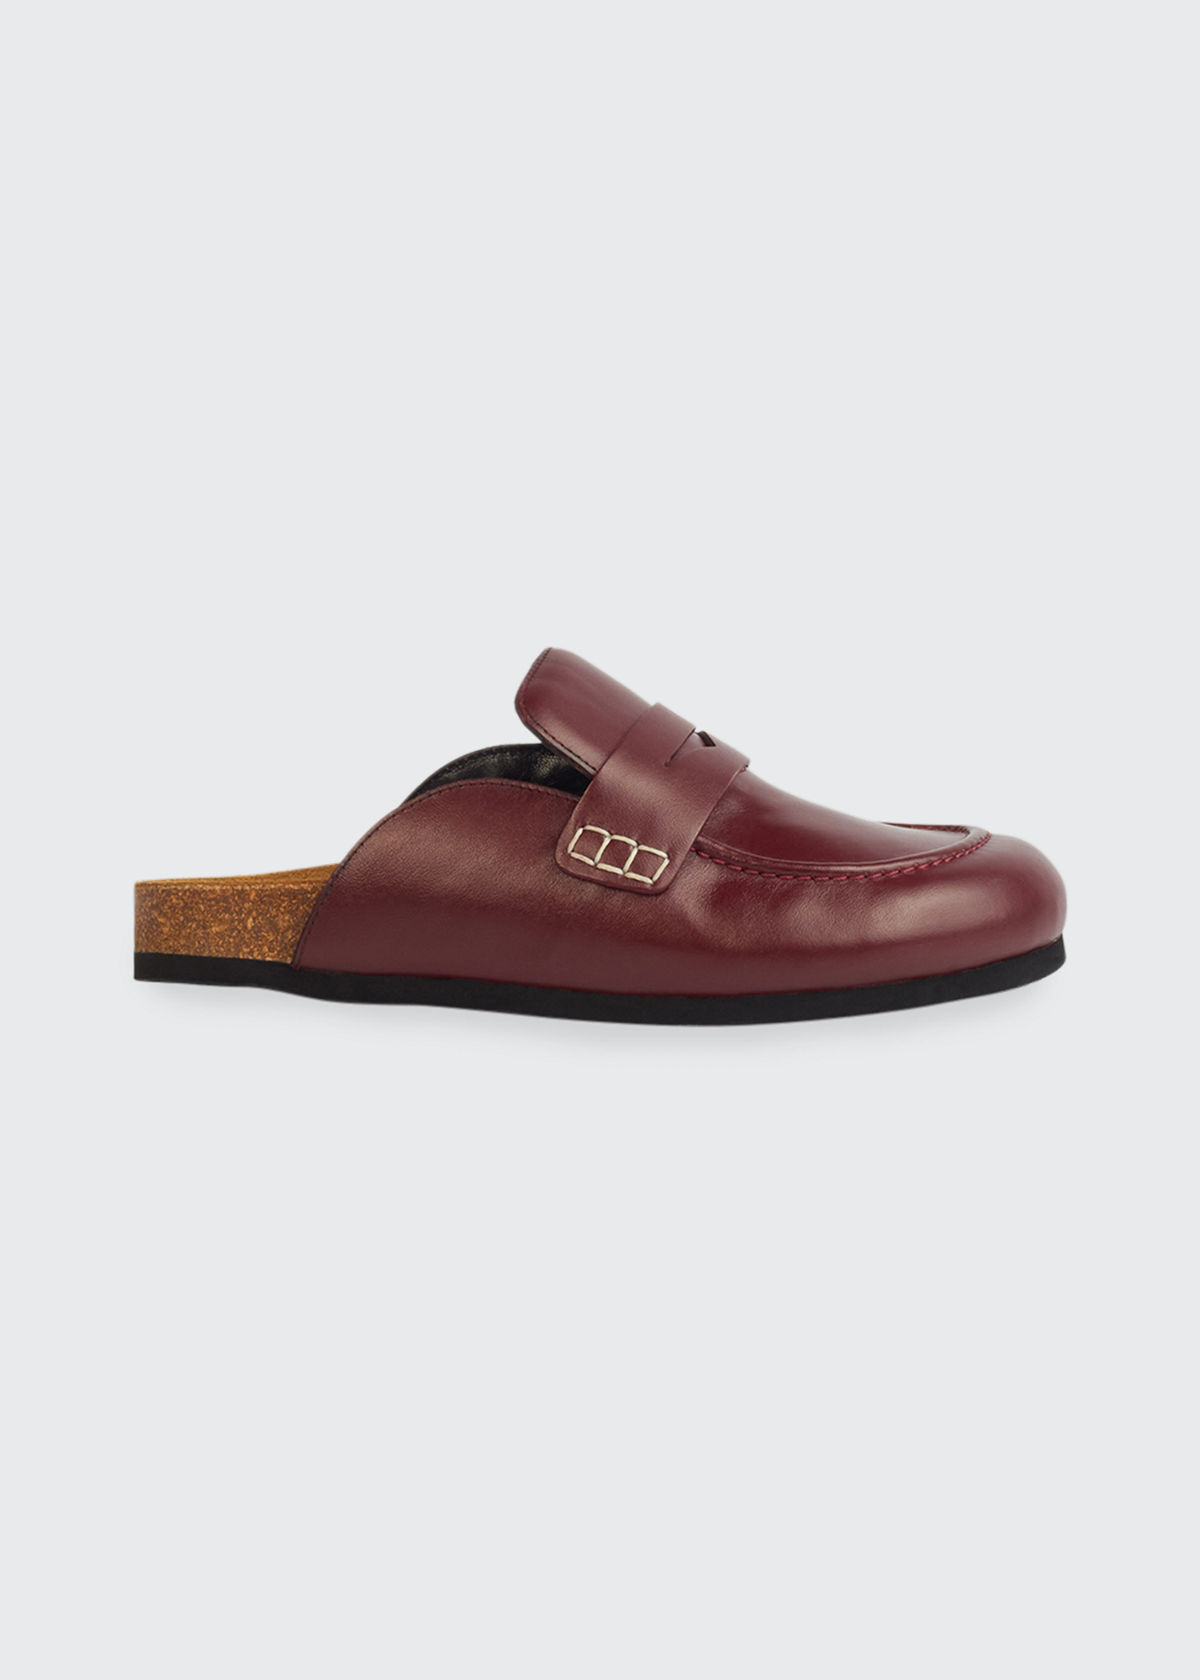 Jw Anderson Loafers LEATHER PENNY LOAFER SLIDE MULES